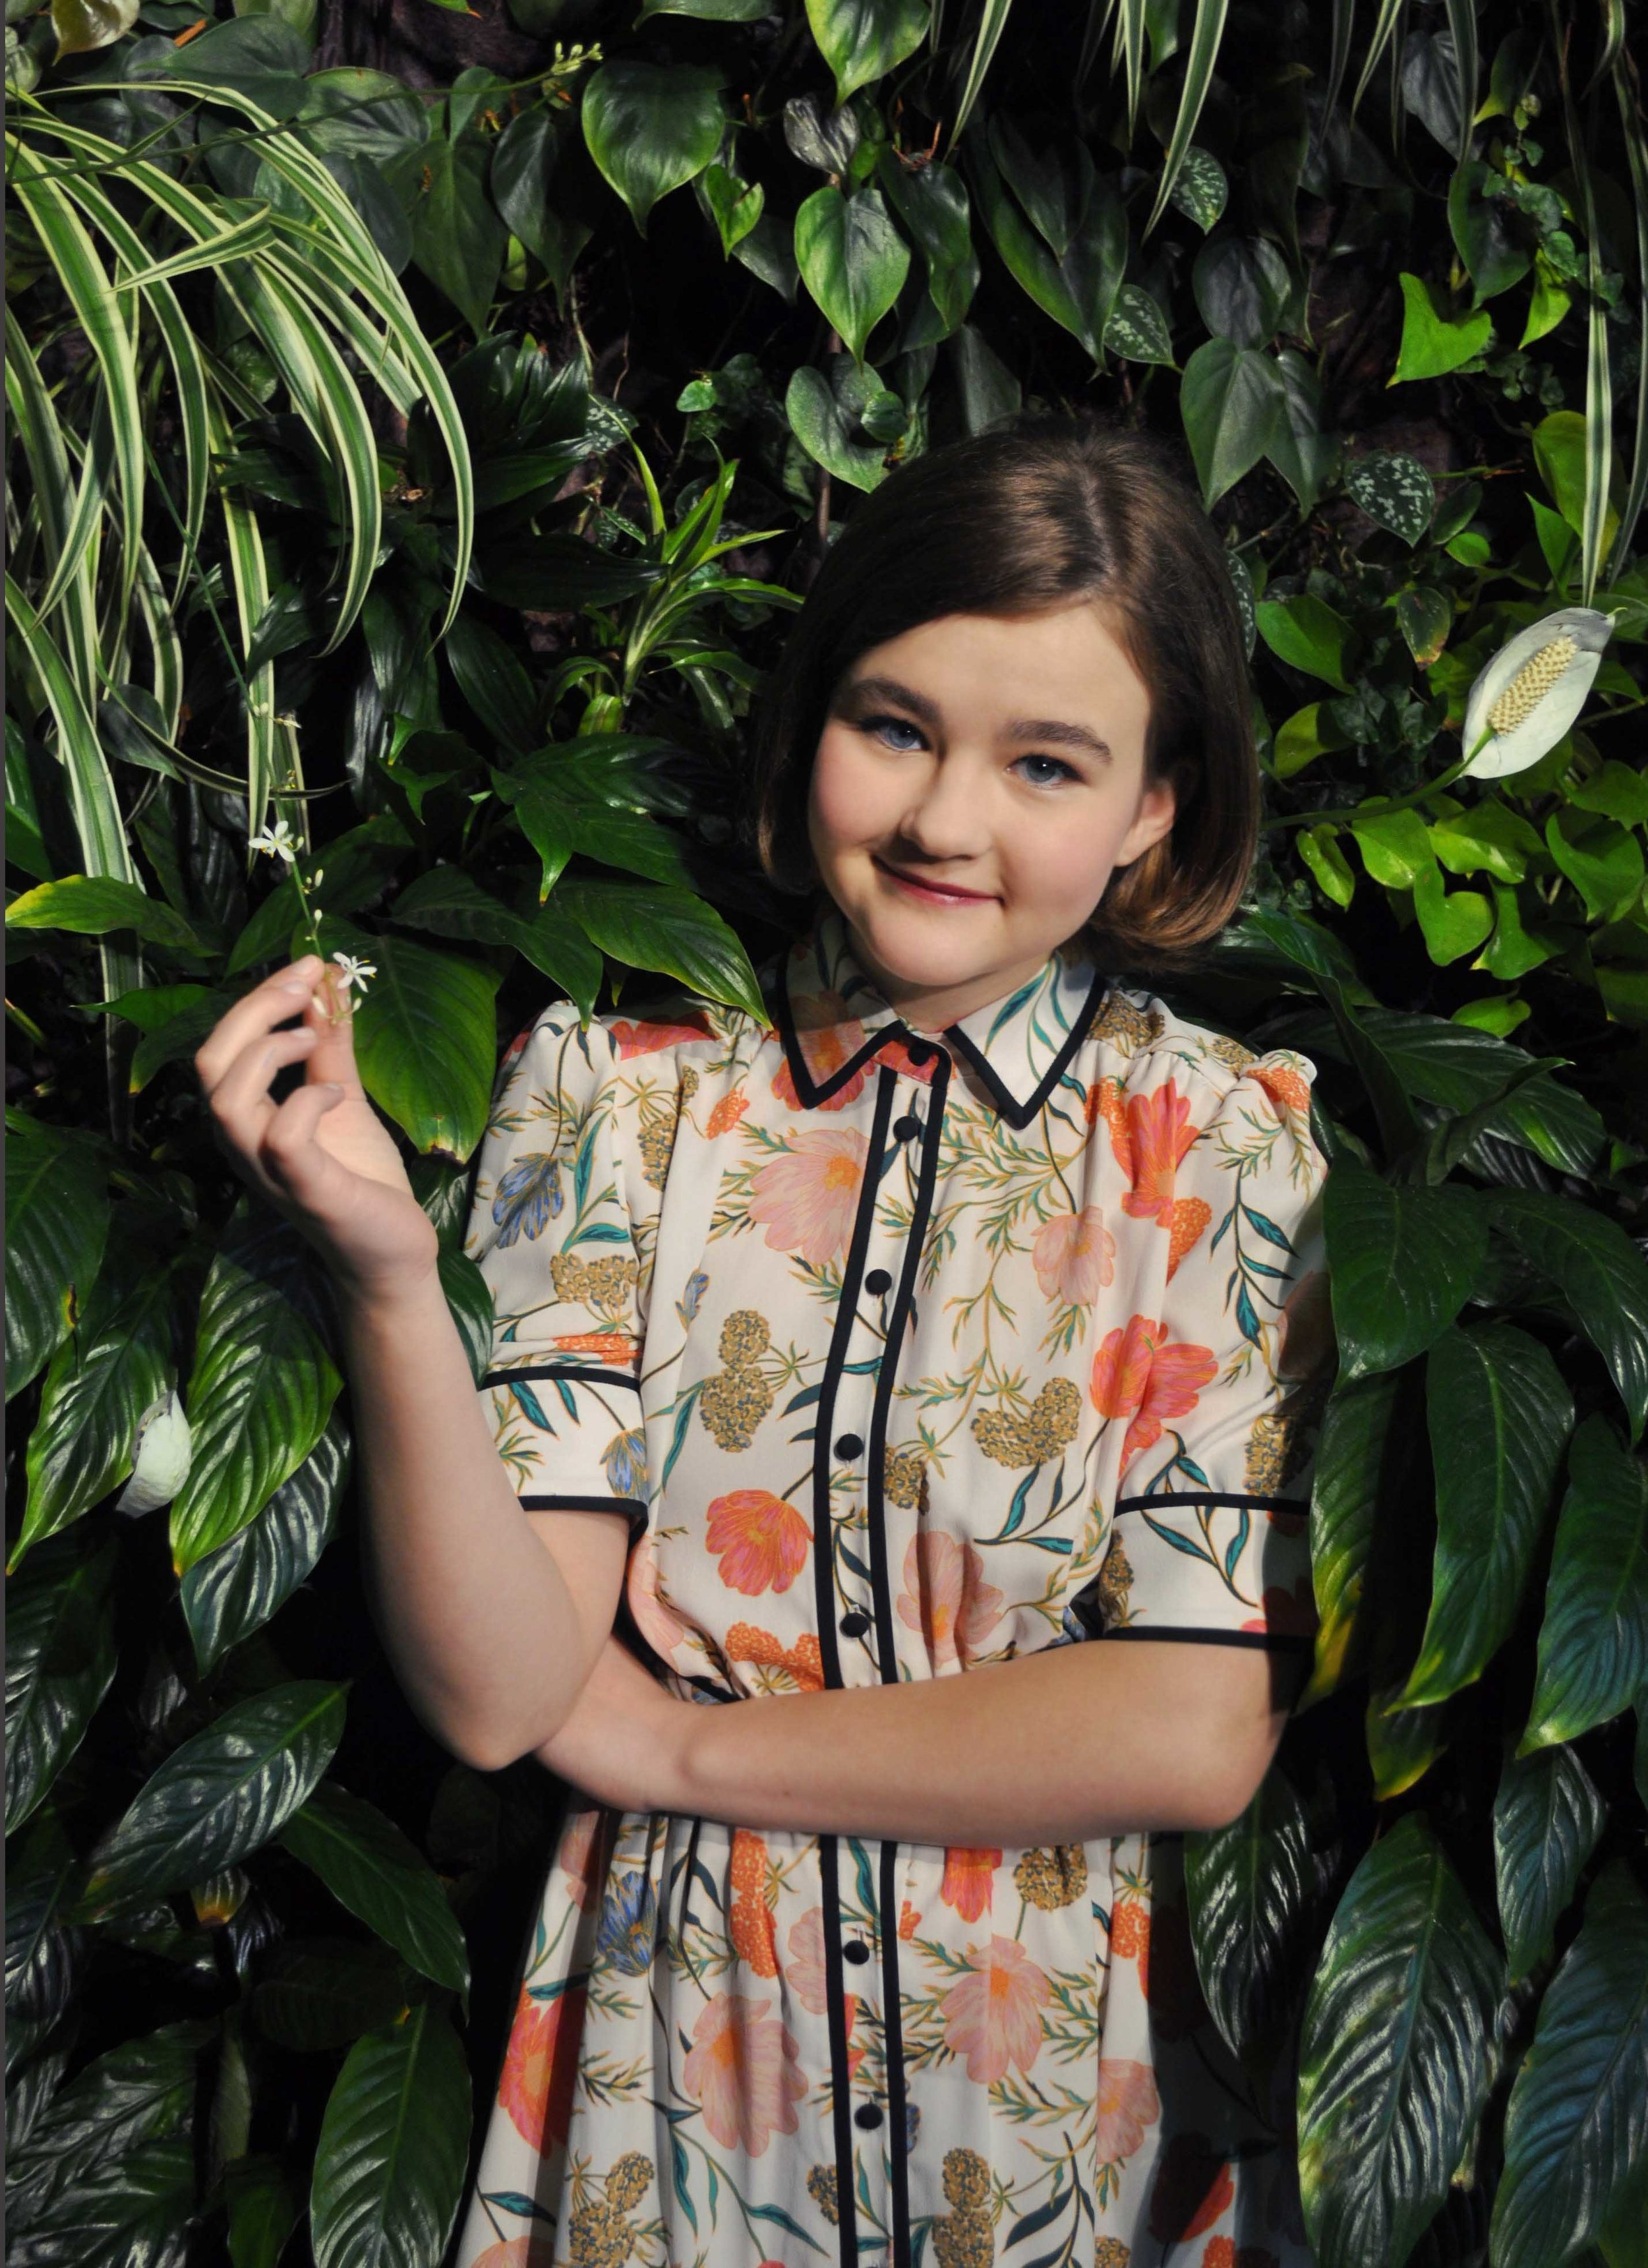 MEET MILLICENT SIMMONDS - The deaf, teen actress making major waves in hollywood and beyond